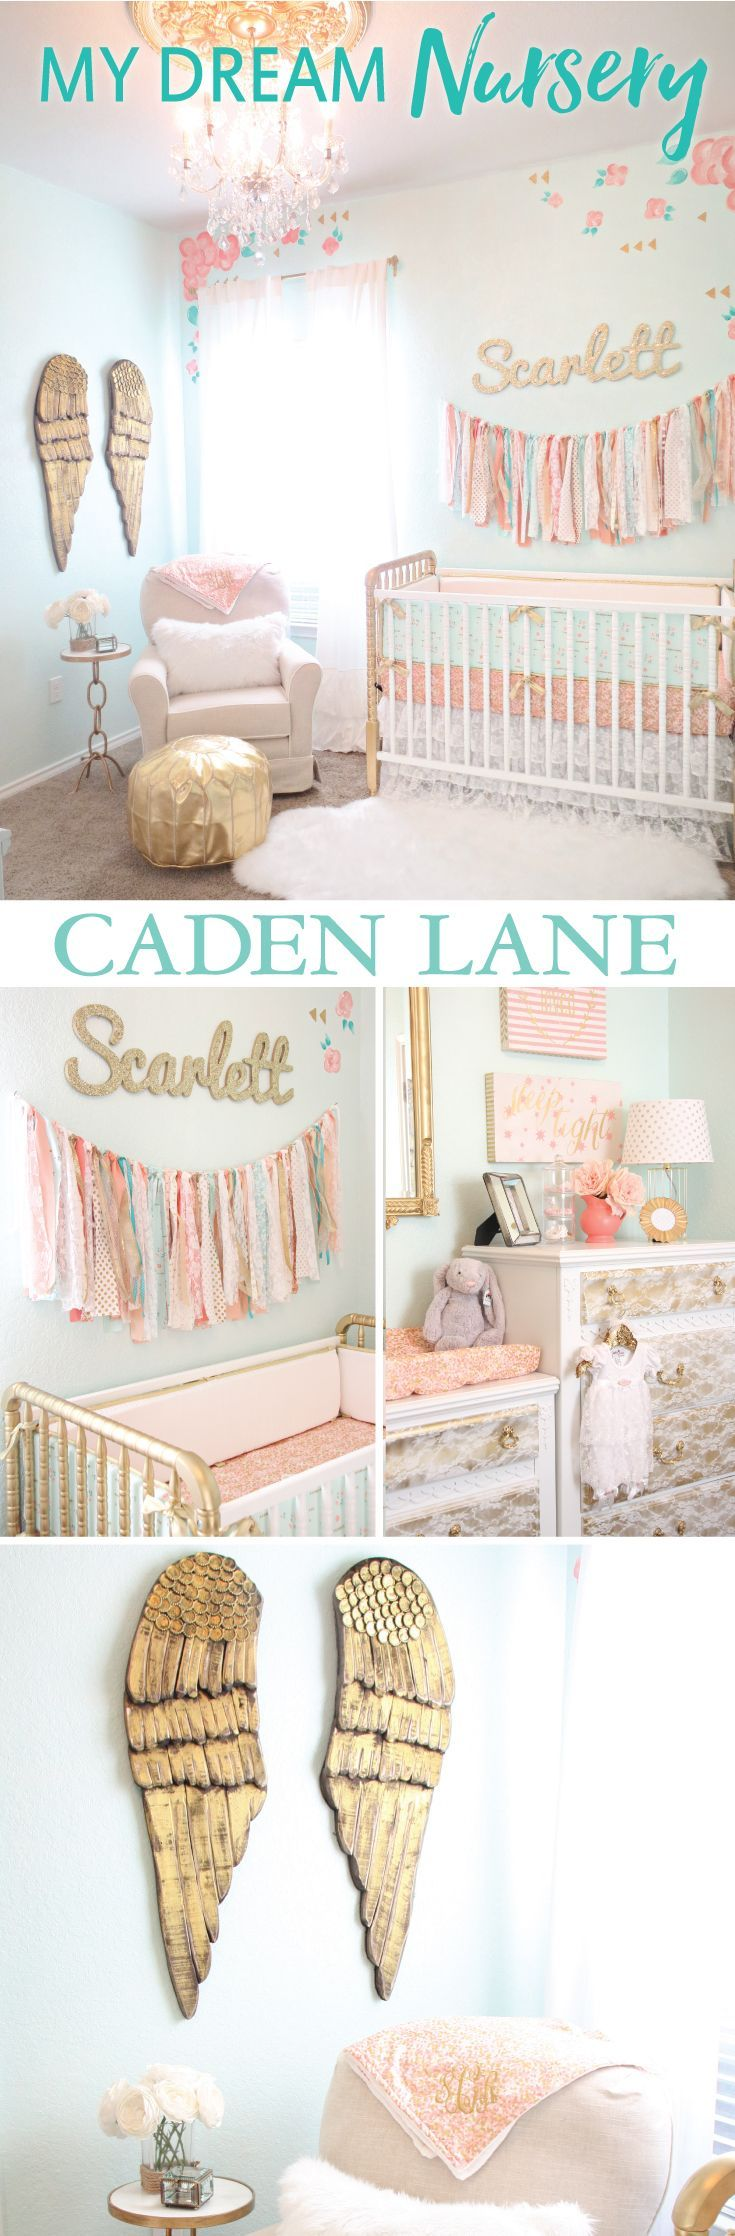 coral mint and gold vintage style scarlett 39 s nursery reveal kinderzimmer. Black Bedroom Furniture Sets. Home Design Ideas